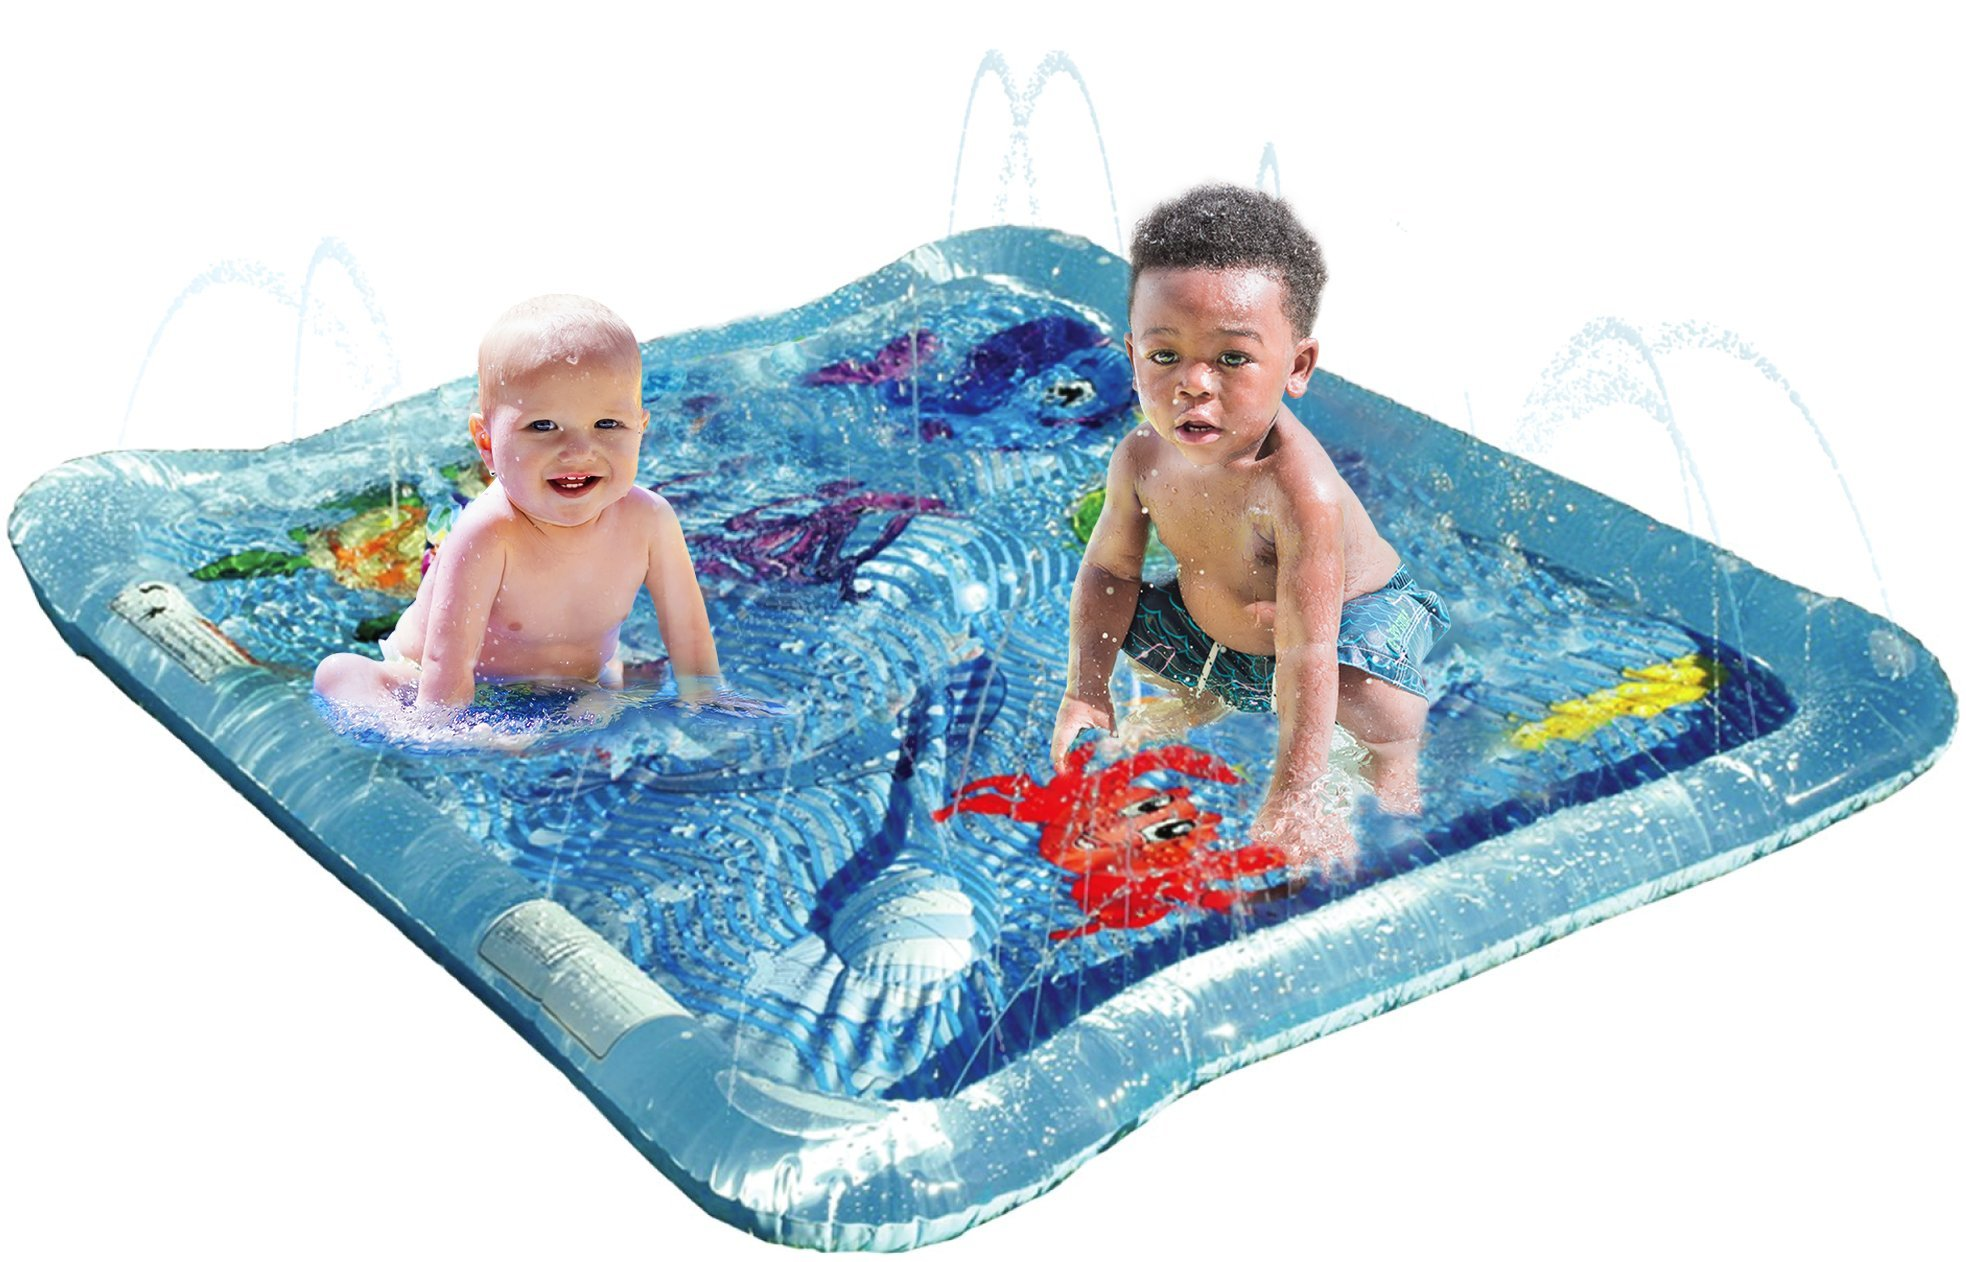 KLEEGER Baby Wading Kiddie Pool: Outdoor Squirt & Splash Water Fun For Toddlers, Simple Instant Set Up (Square Sea Theme)